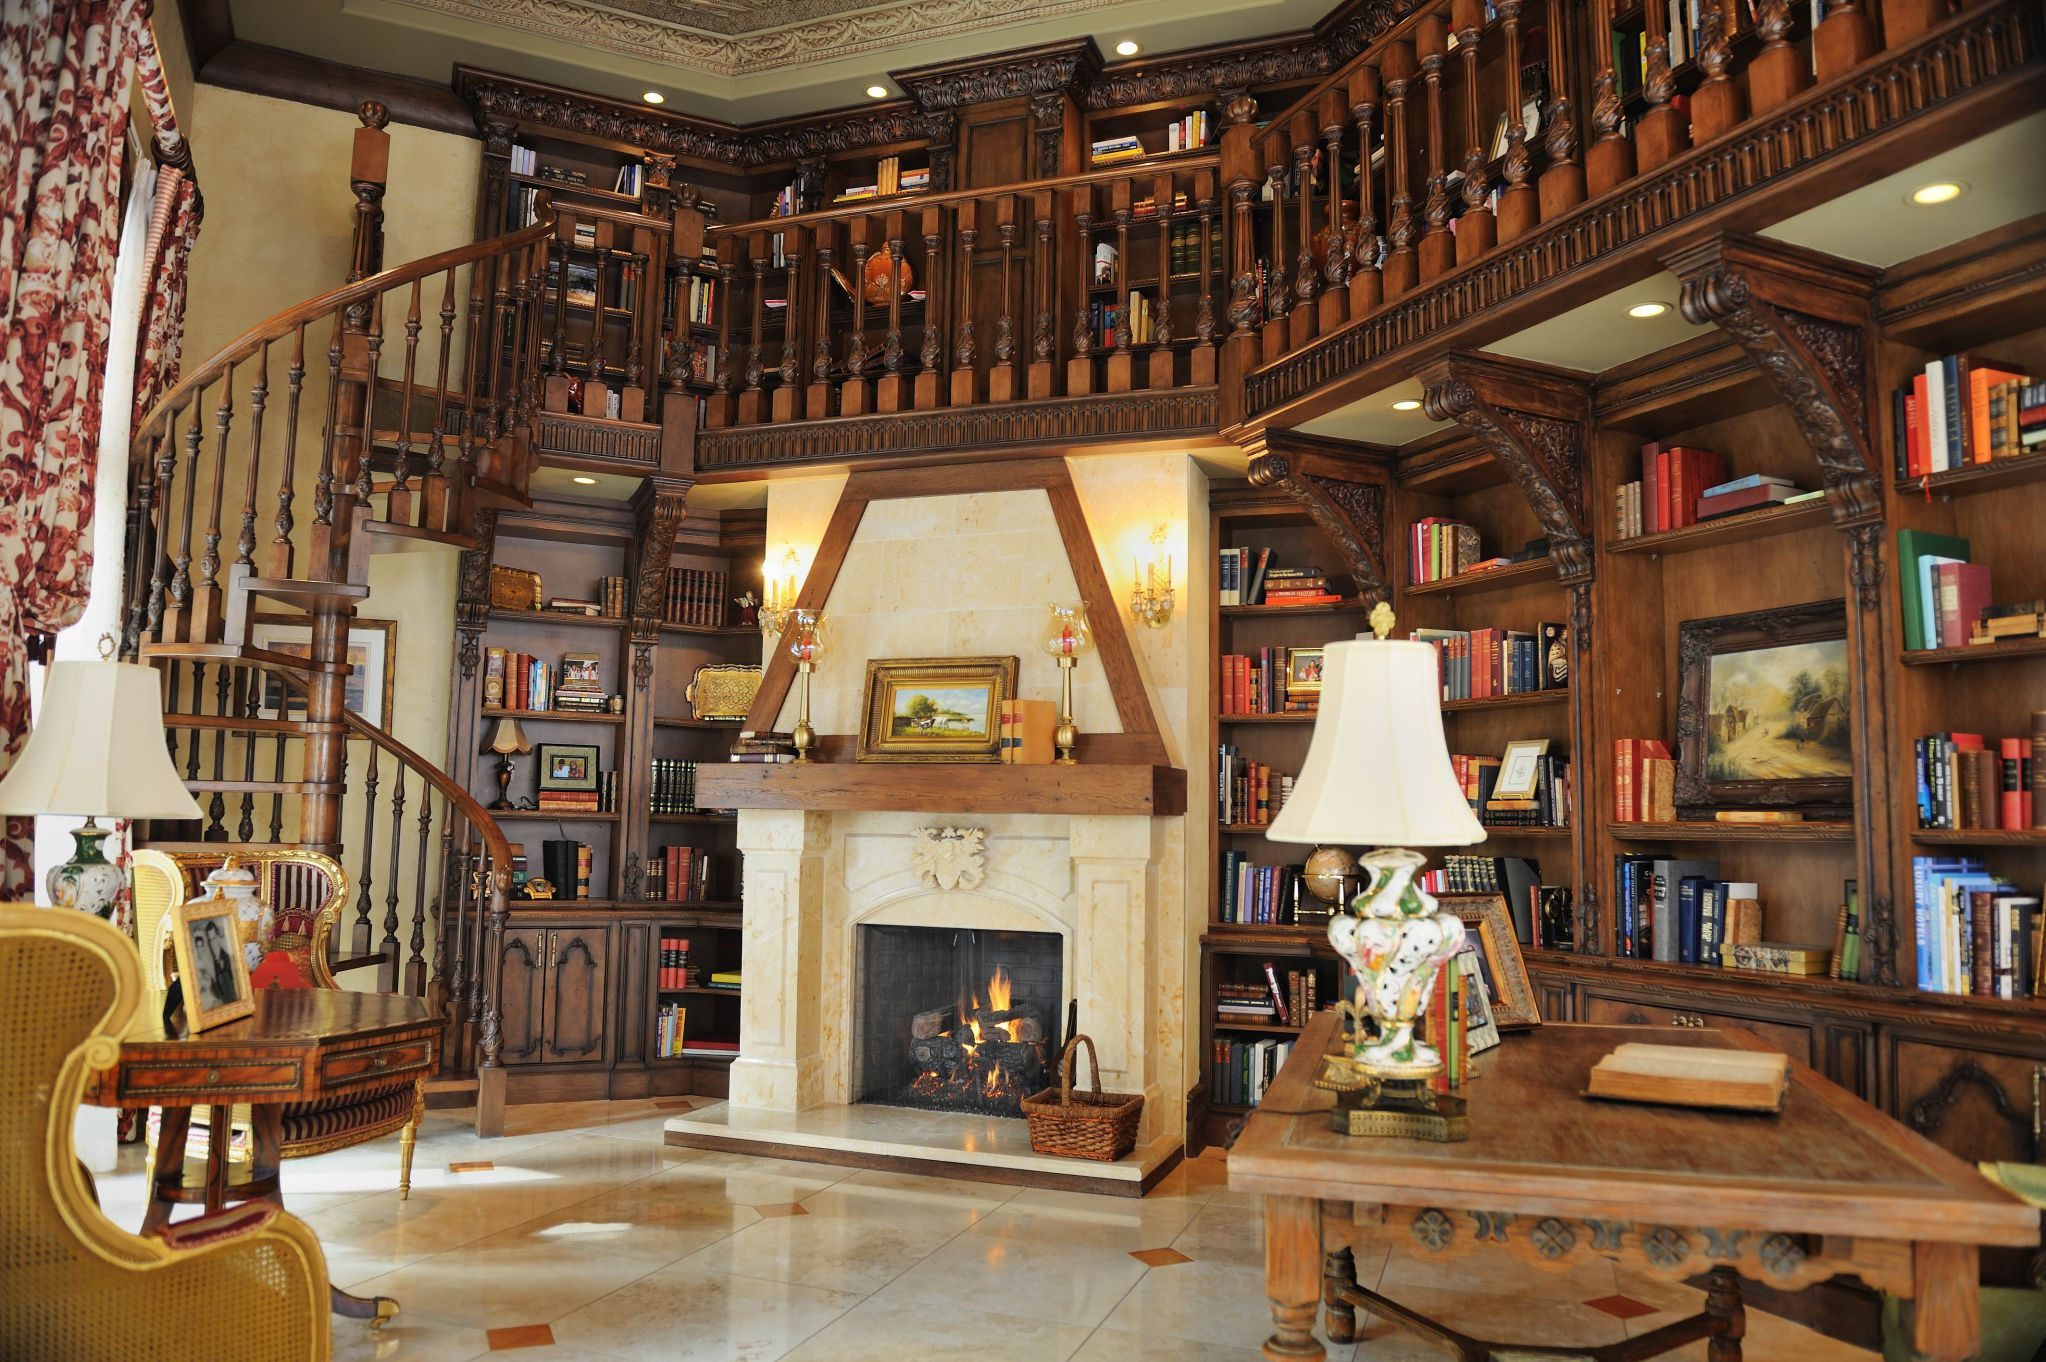 Wonderful Interior House With Fireplace between High Book Shelve Under Stairs